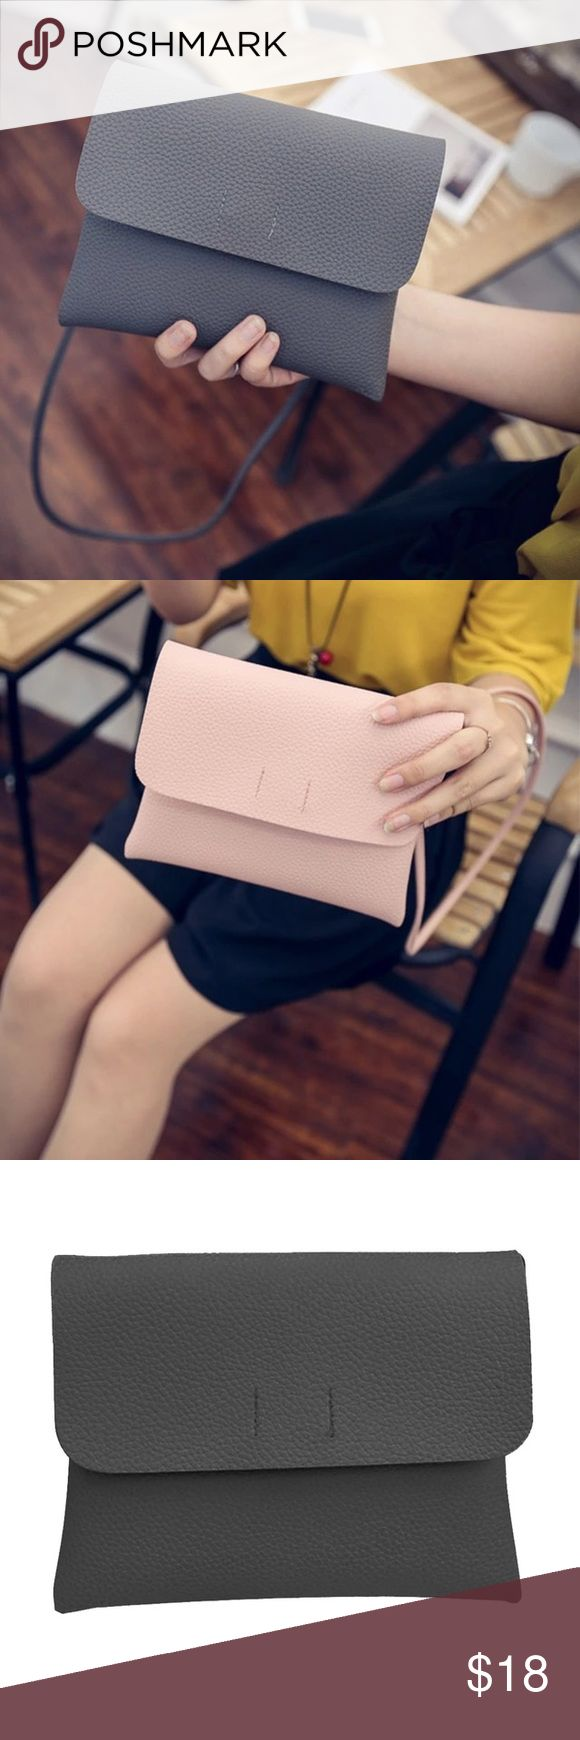 Cross Body Envelope Fold Over Purse COMING SOON Available in Black, Blush, and Grey. Like this listing to be notified as soon as this listing becomes available Bags Crossbody Bags